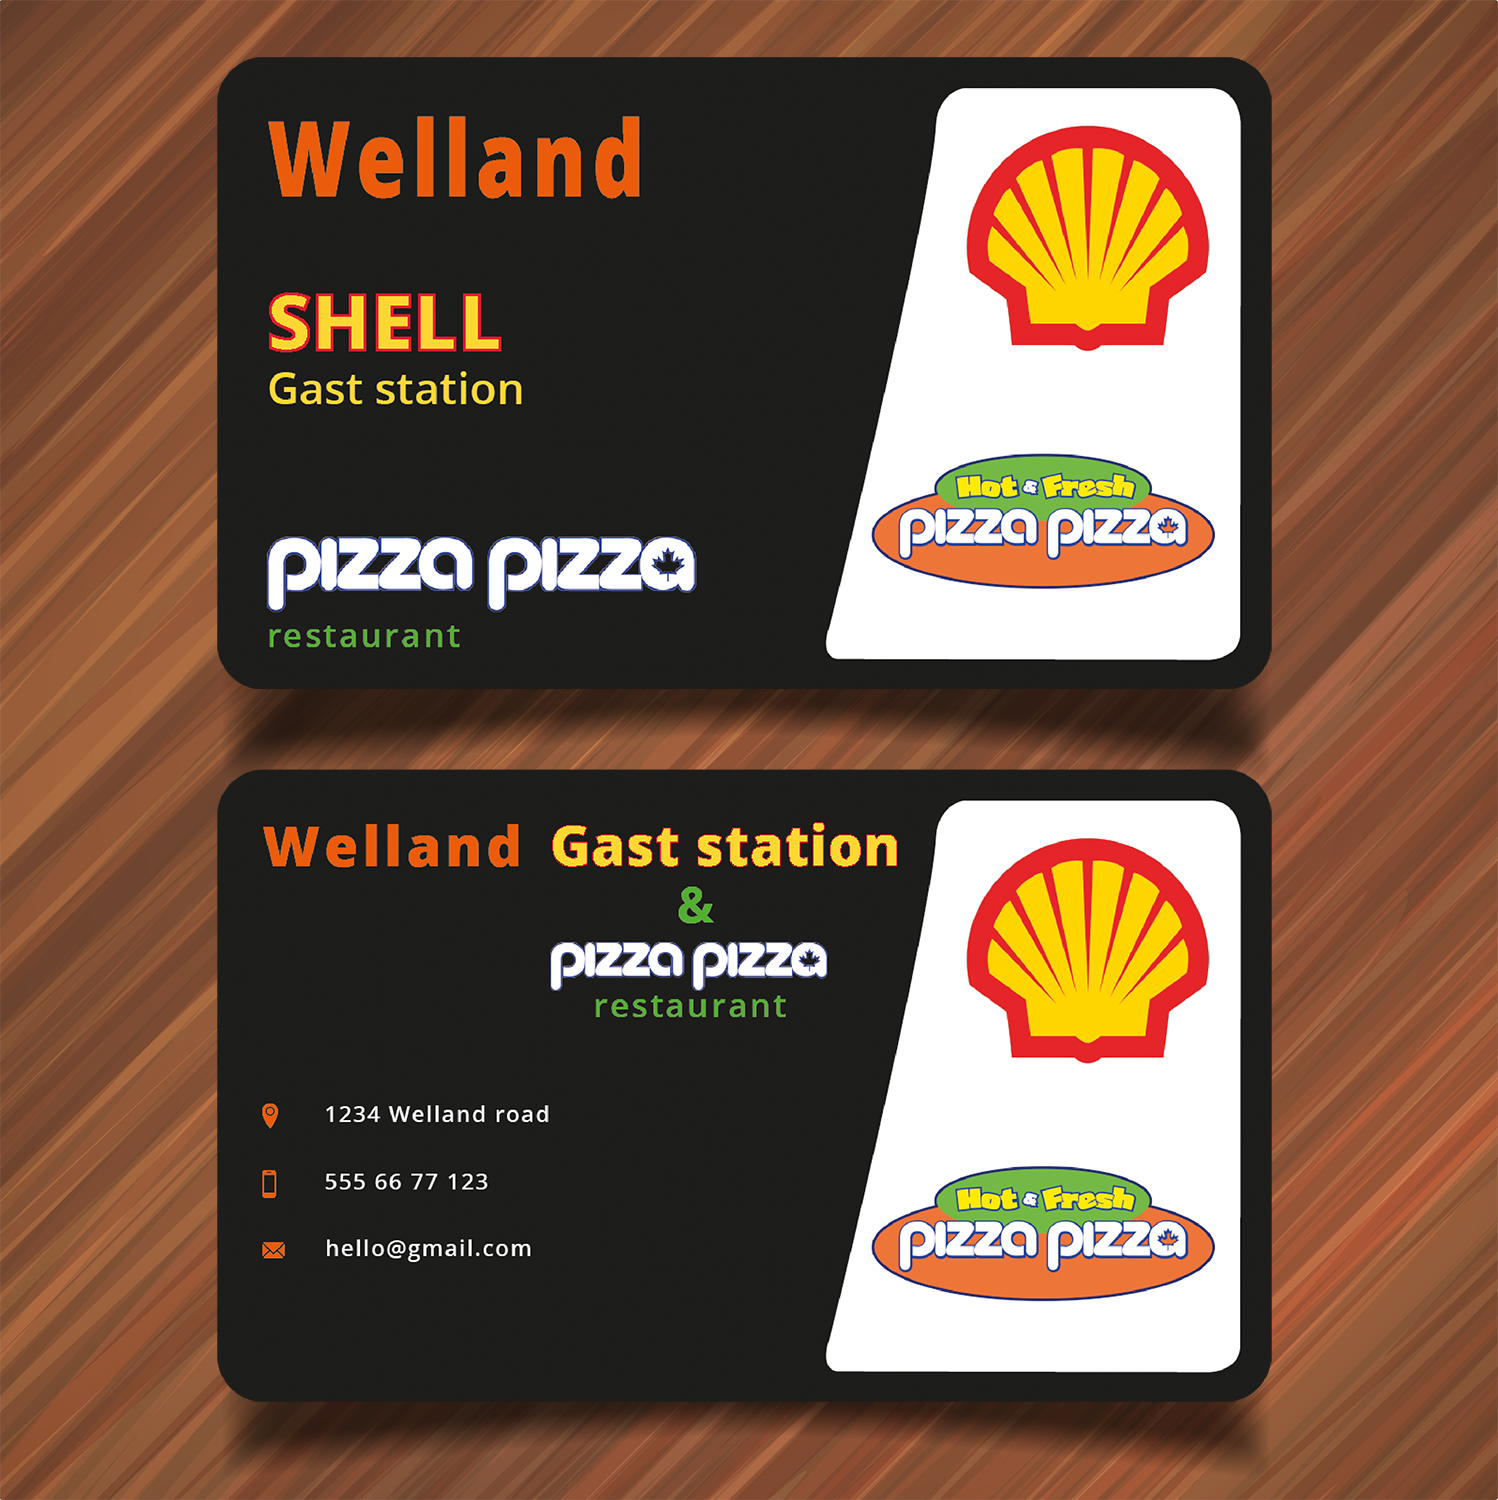 Image Result For Shell Gas Business Credit Card Login